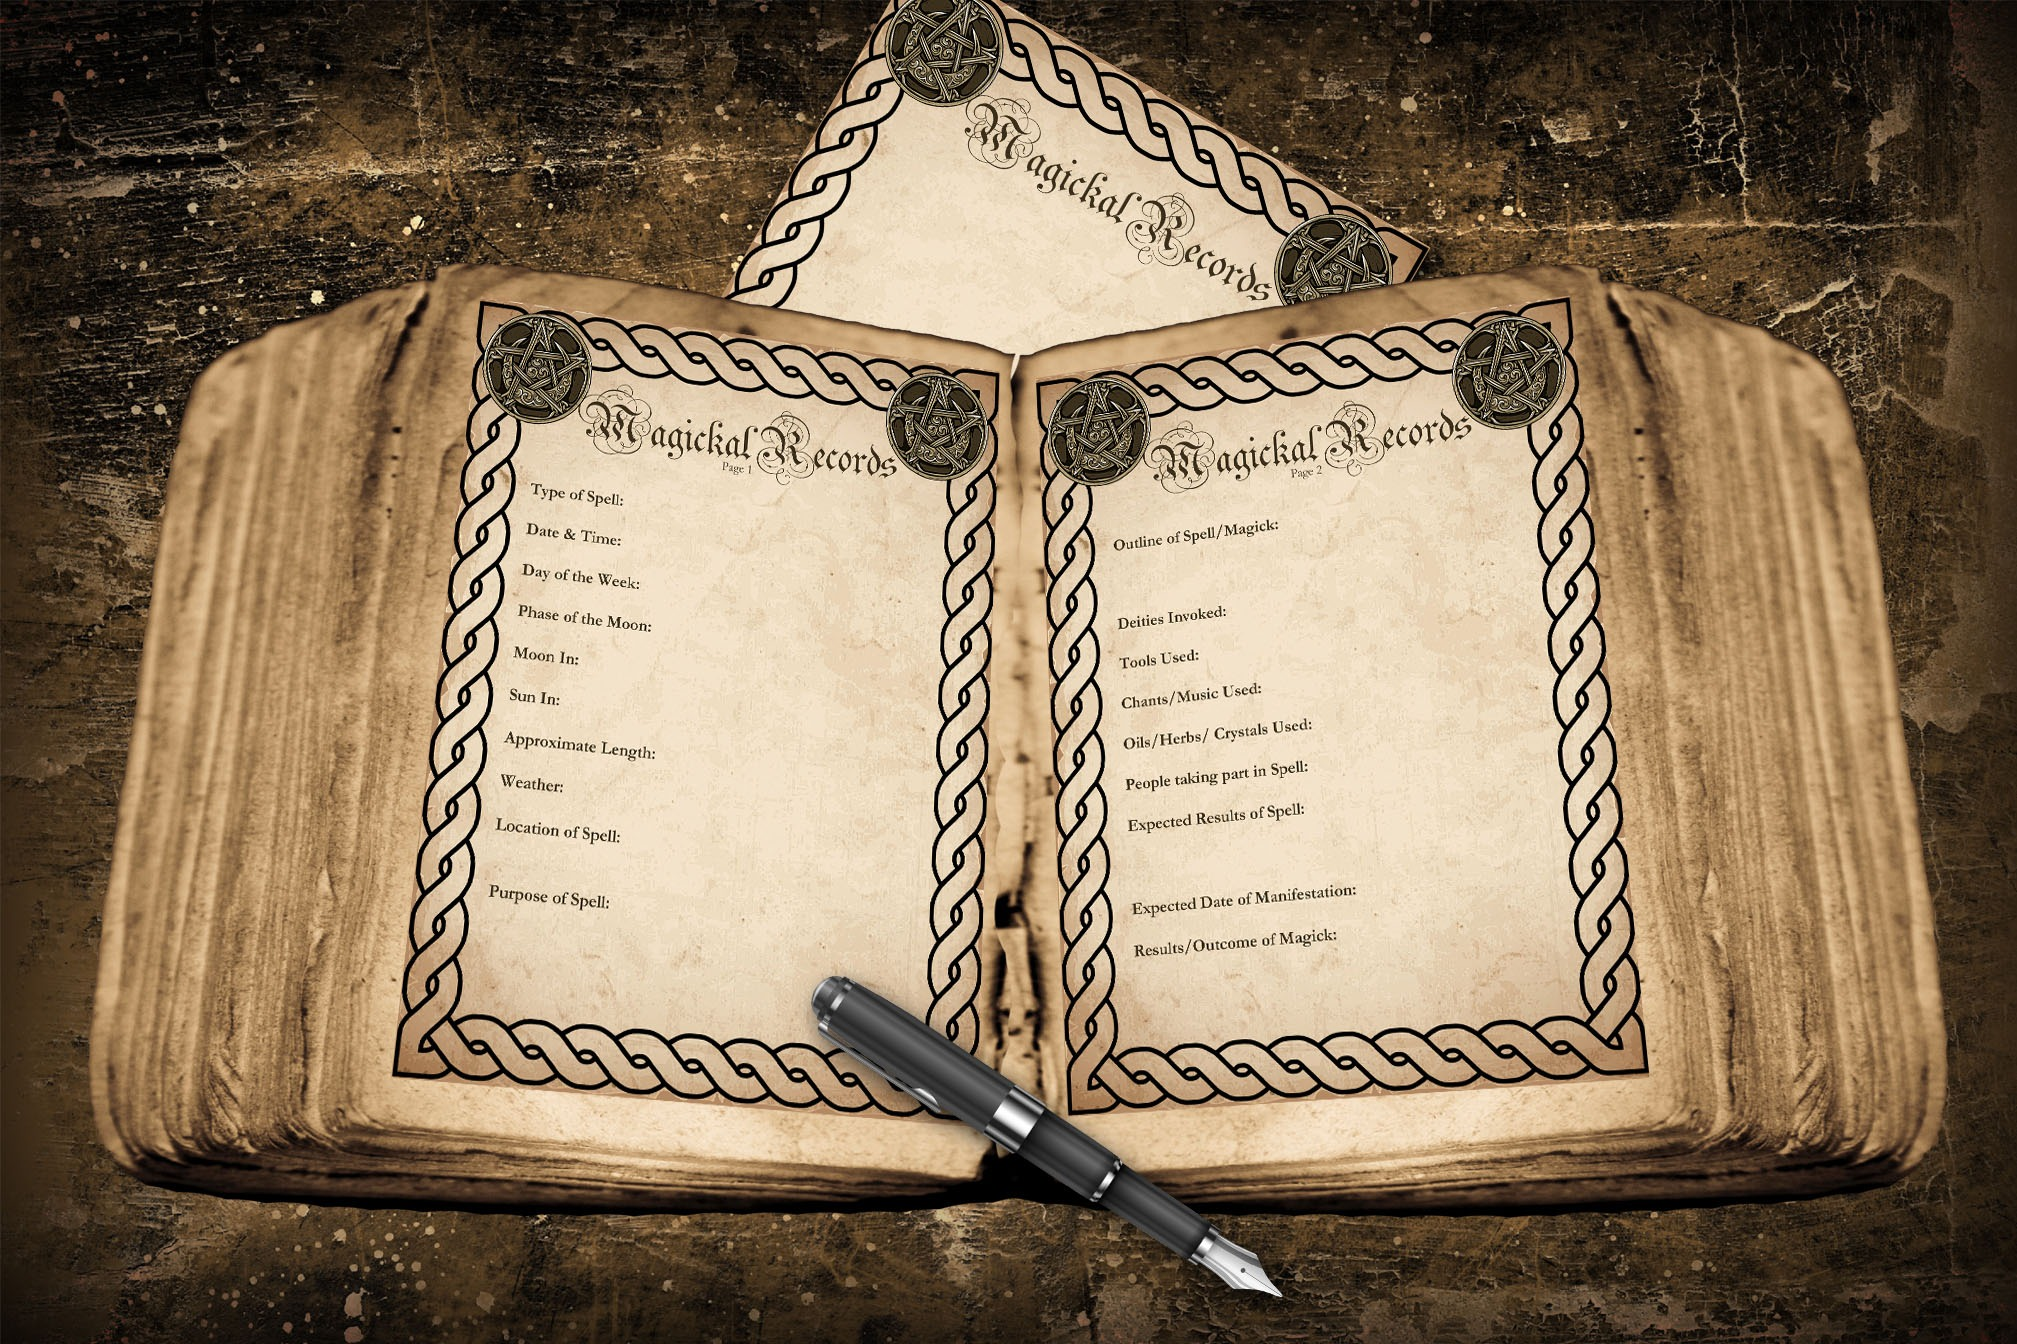 MAGICKAL RECORDS PAGES